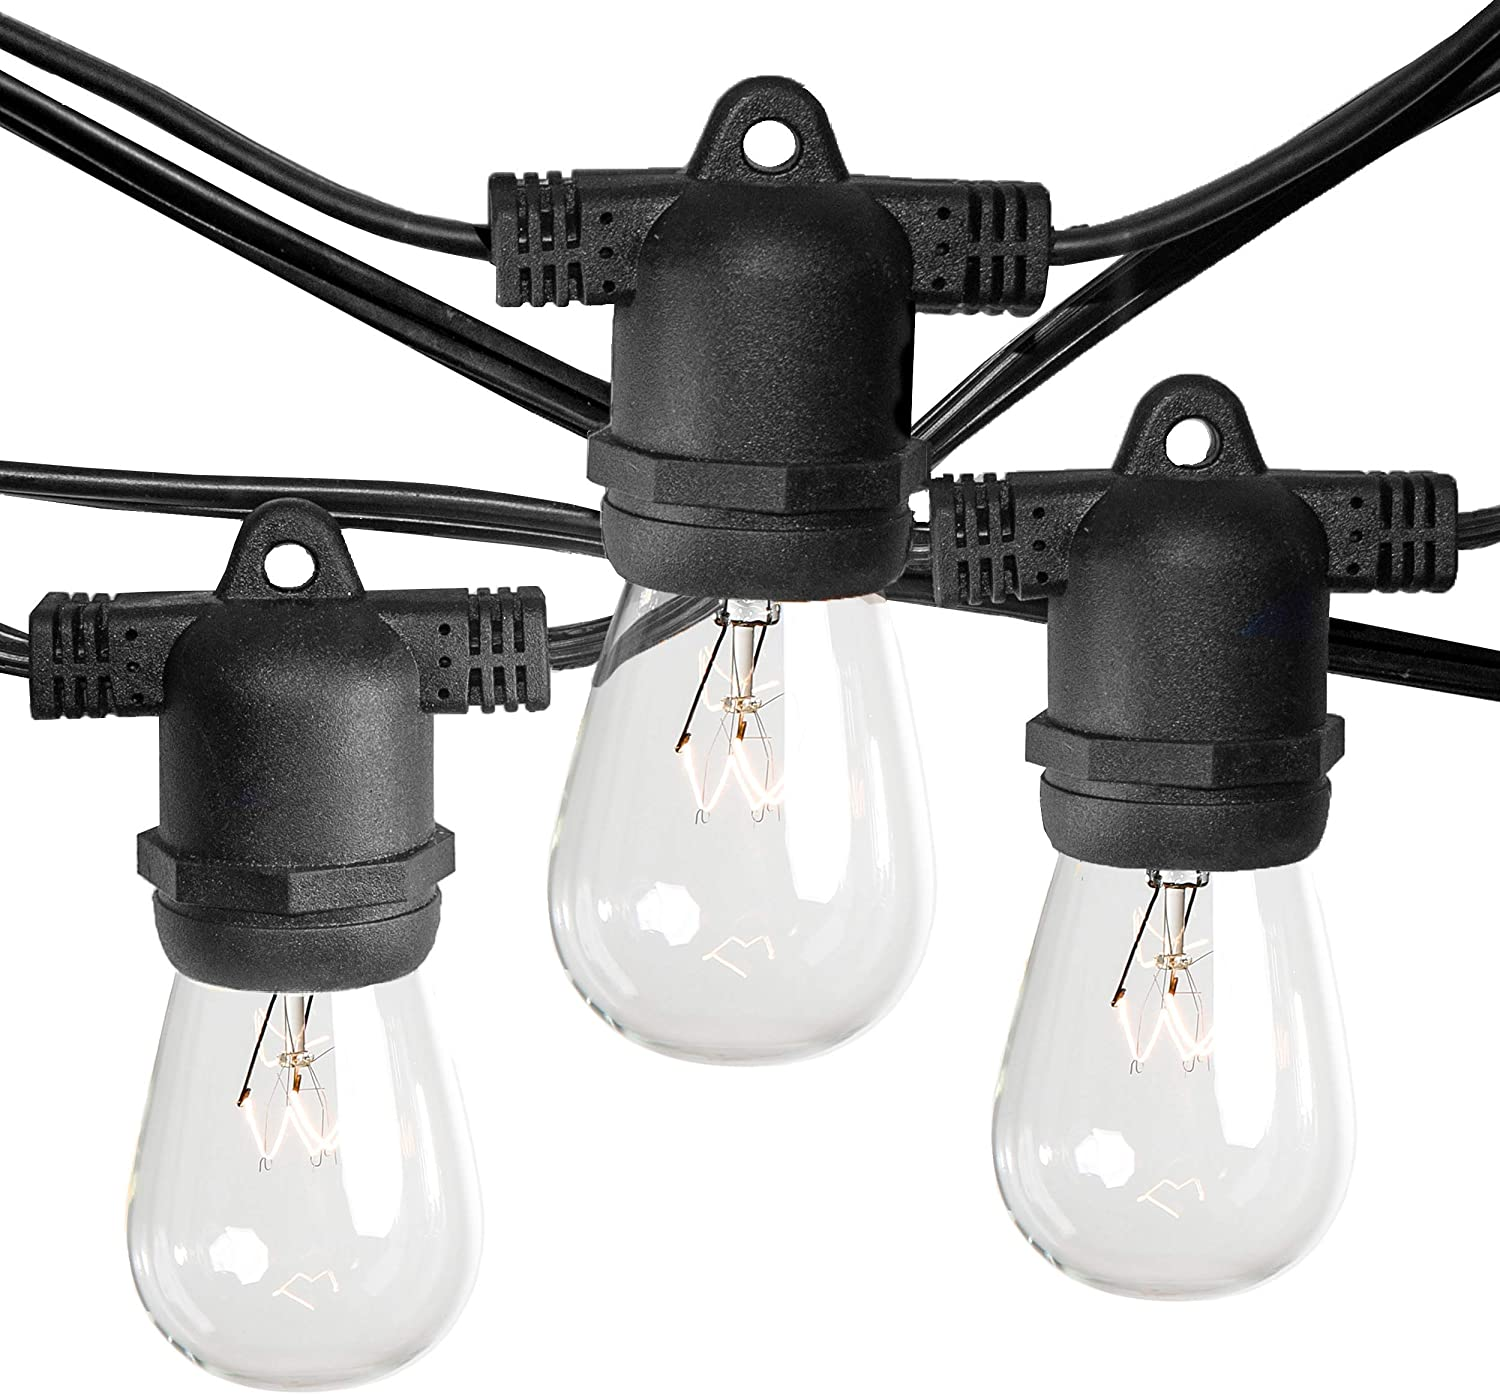 Commercial E26 favorite String Lights with 16 Gauge Wire Foot 25 Store 50 Sock